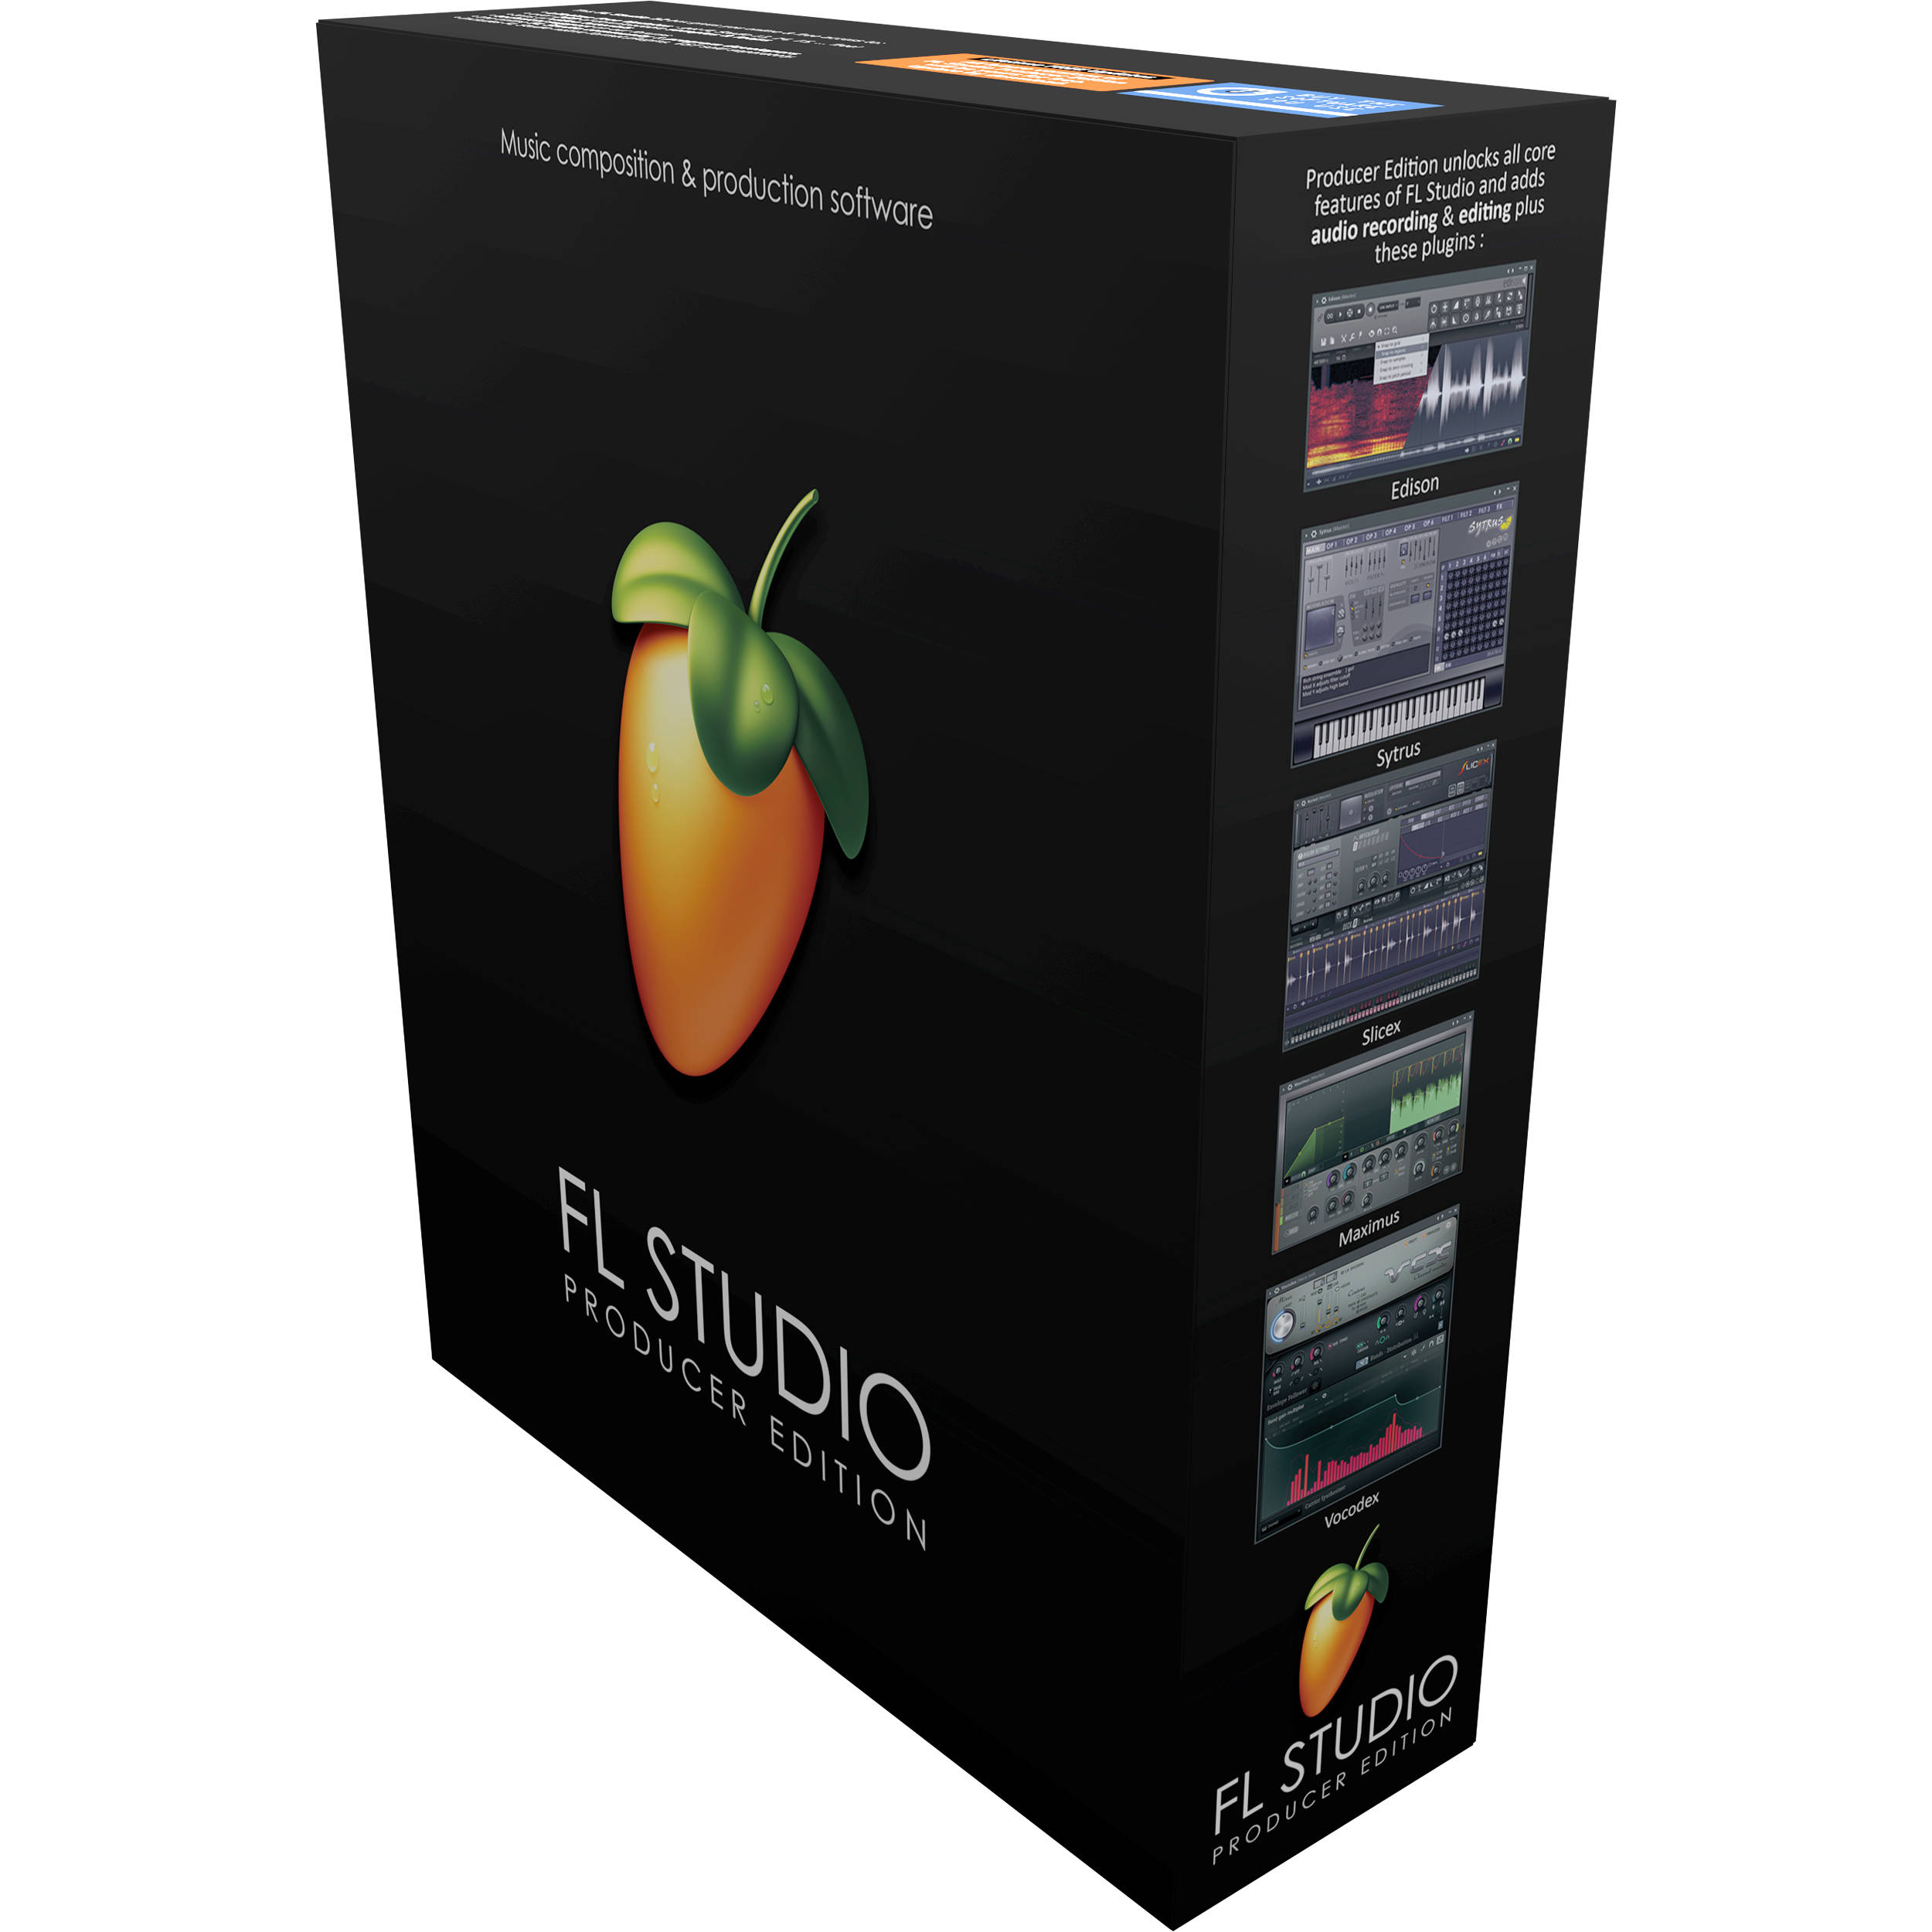 fl studio 10 producer edition free download